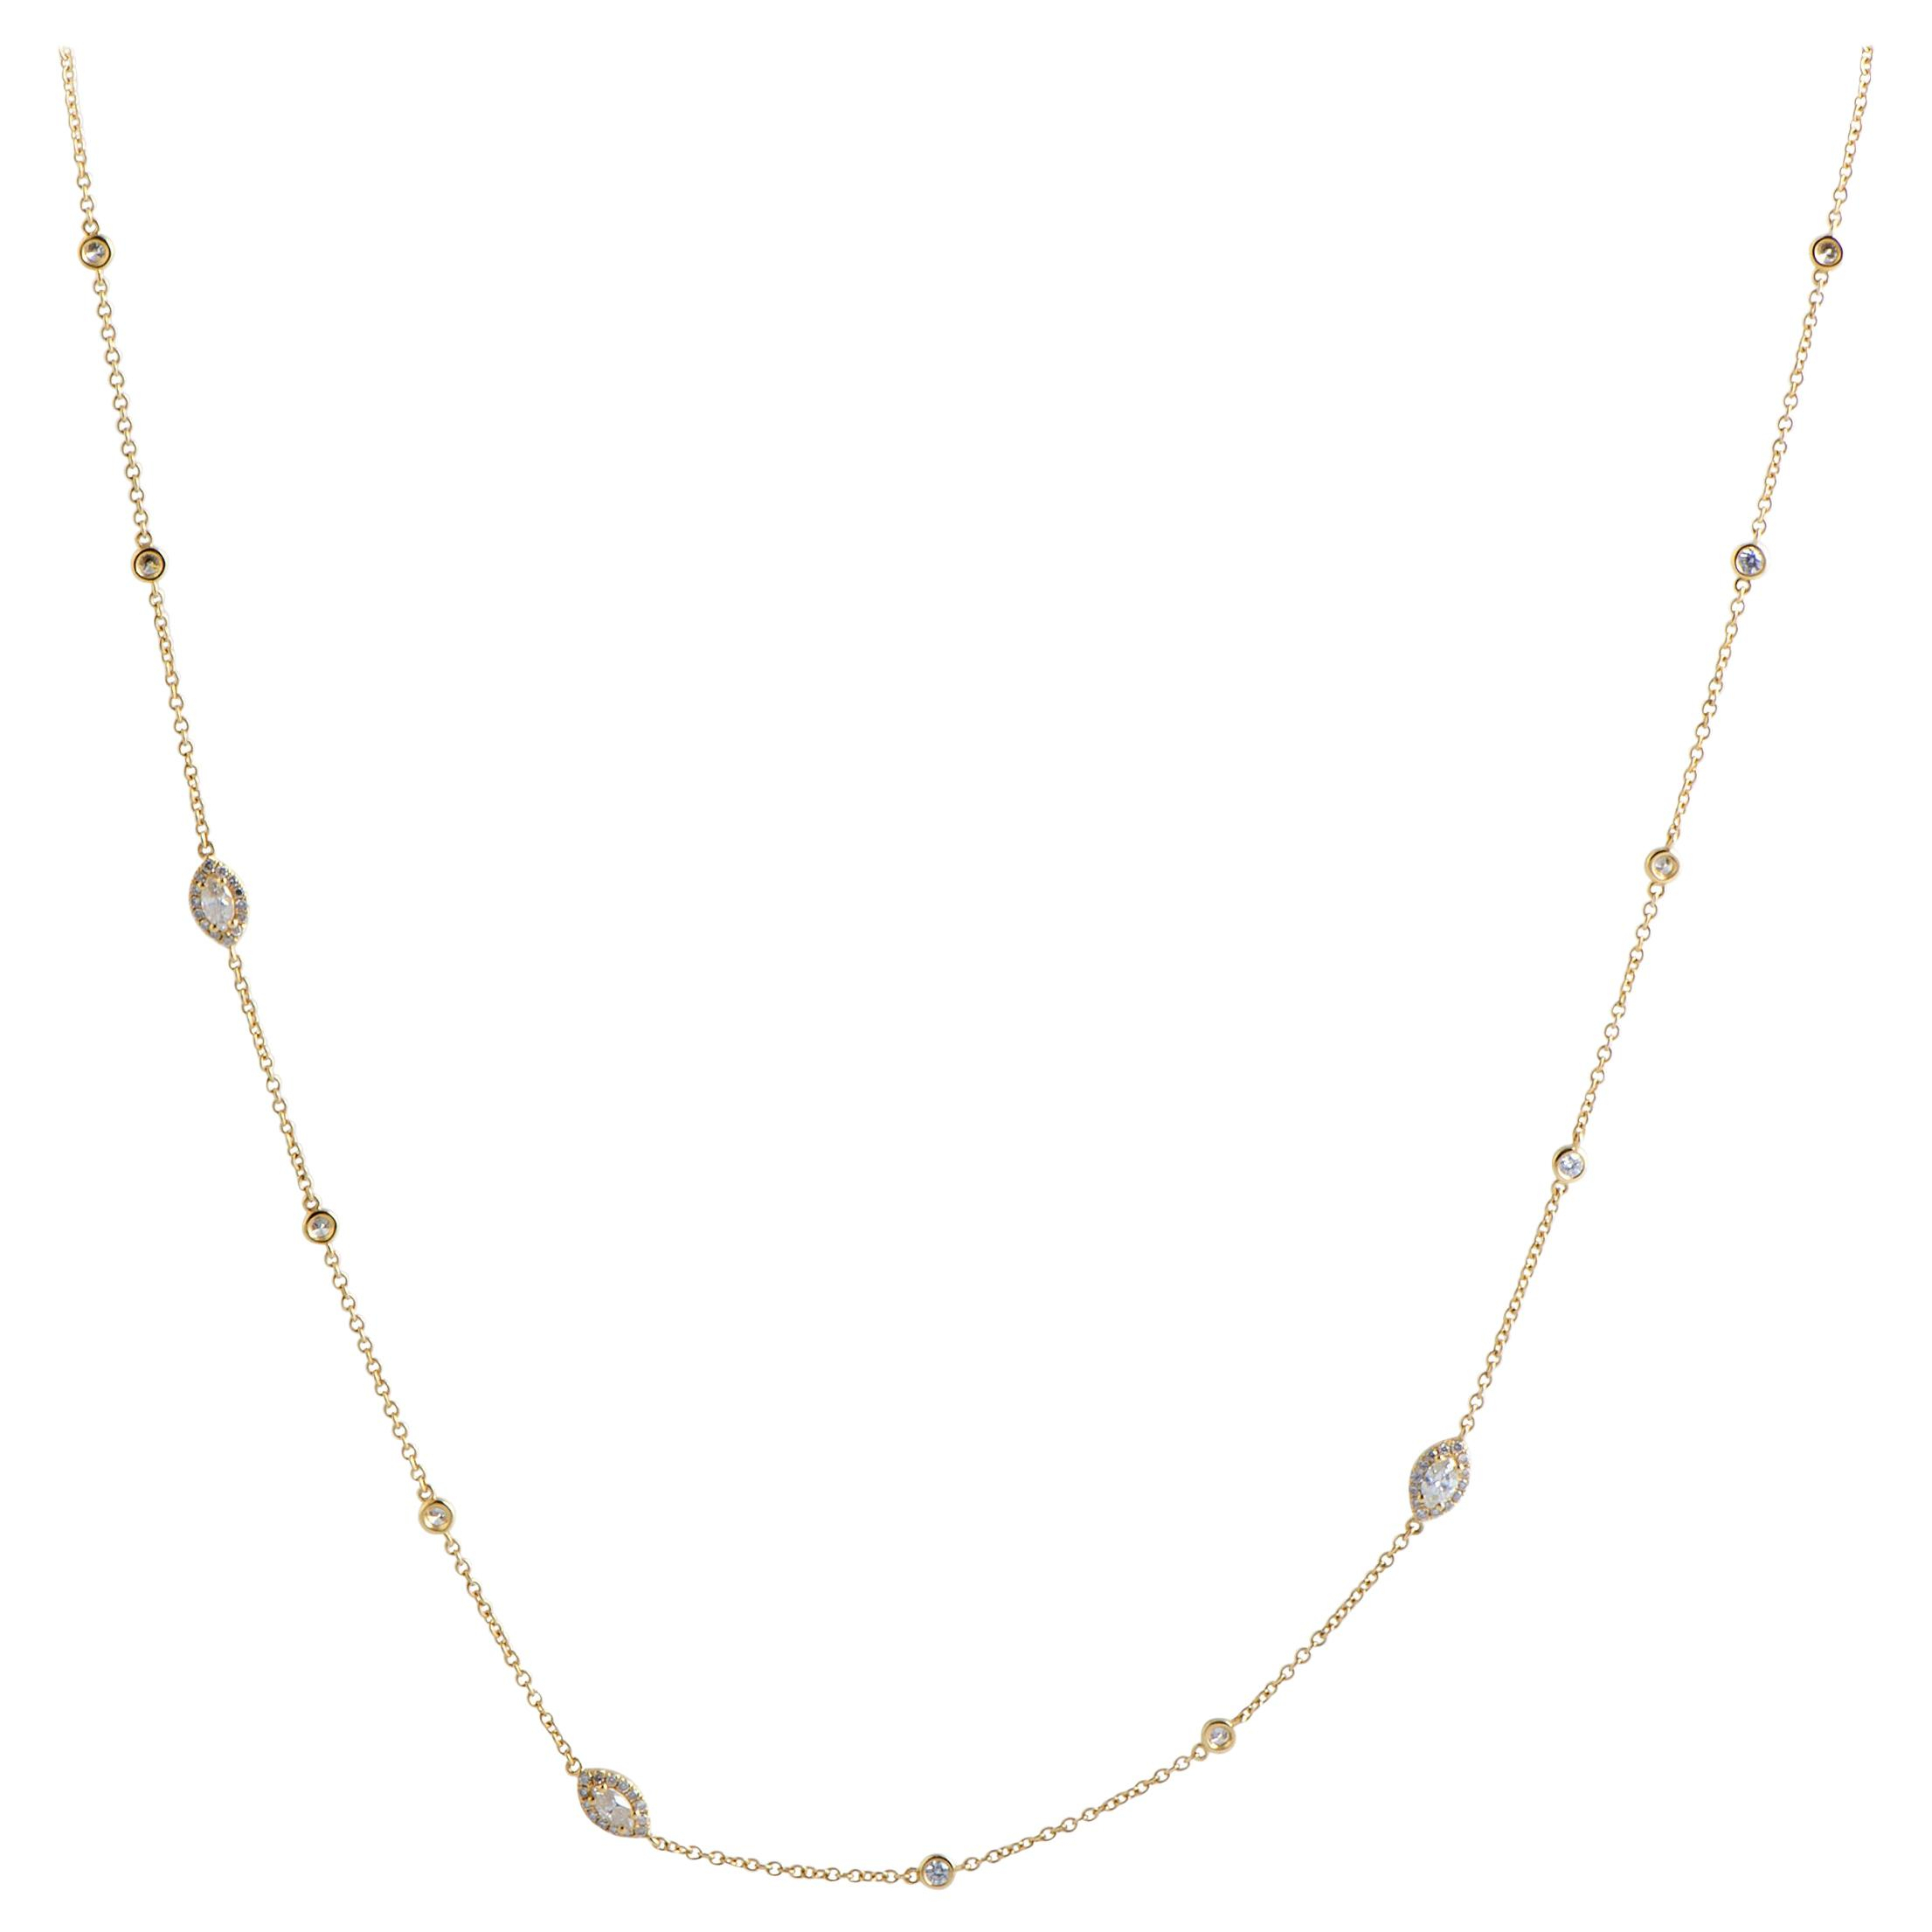 Lb Exclusive 18 Karat Gold Round And Marquise Diamonds Long Sautoir Necklace Pertaining To Most Recently Released White Gold Diamond Sautoir Necklaces (View 12 of 25)